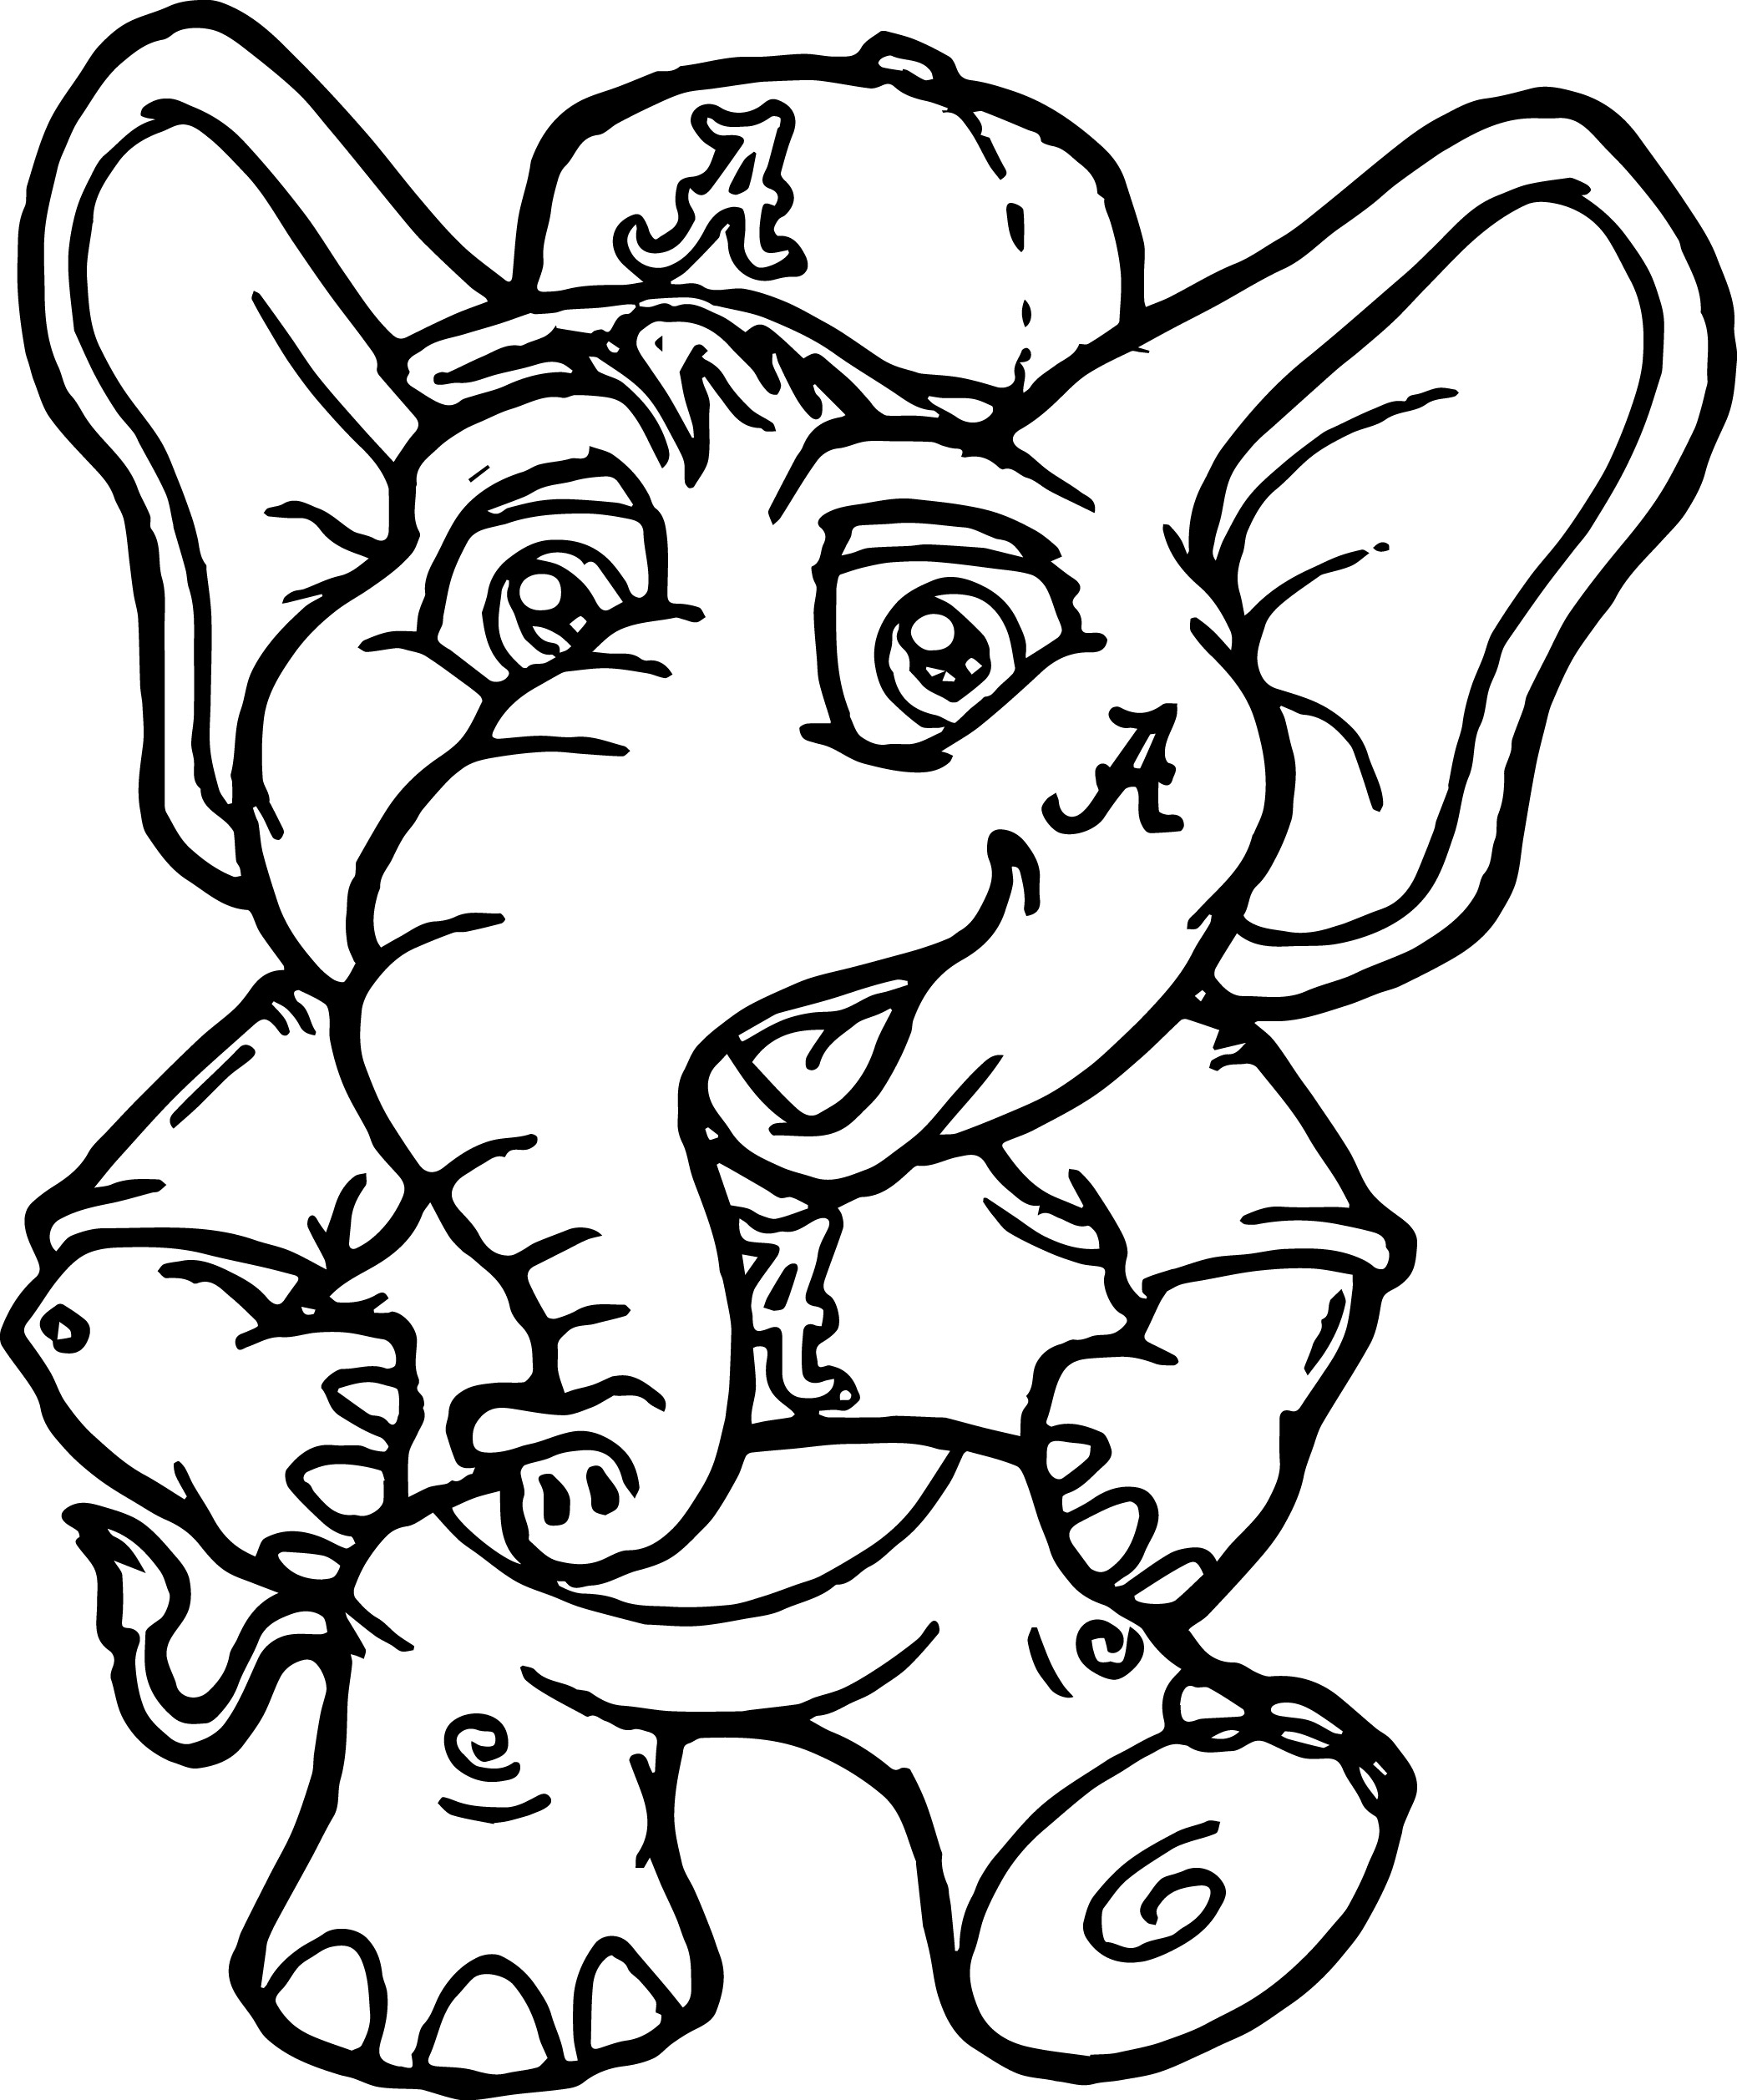 alabama football coloring pages - Coloring Page Elephant Design